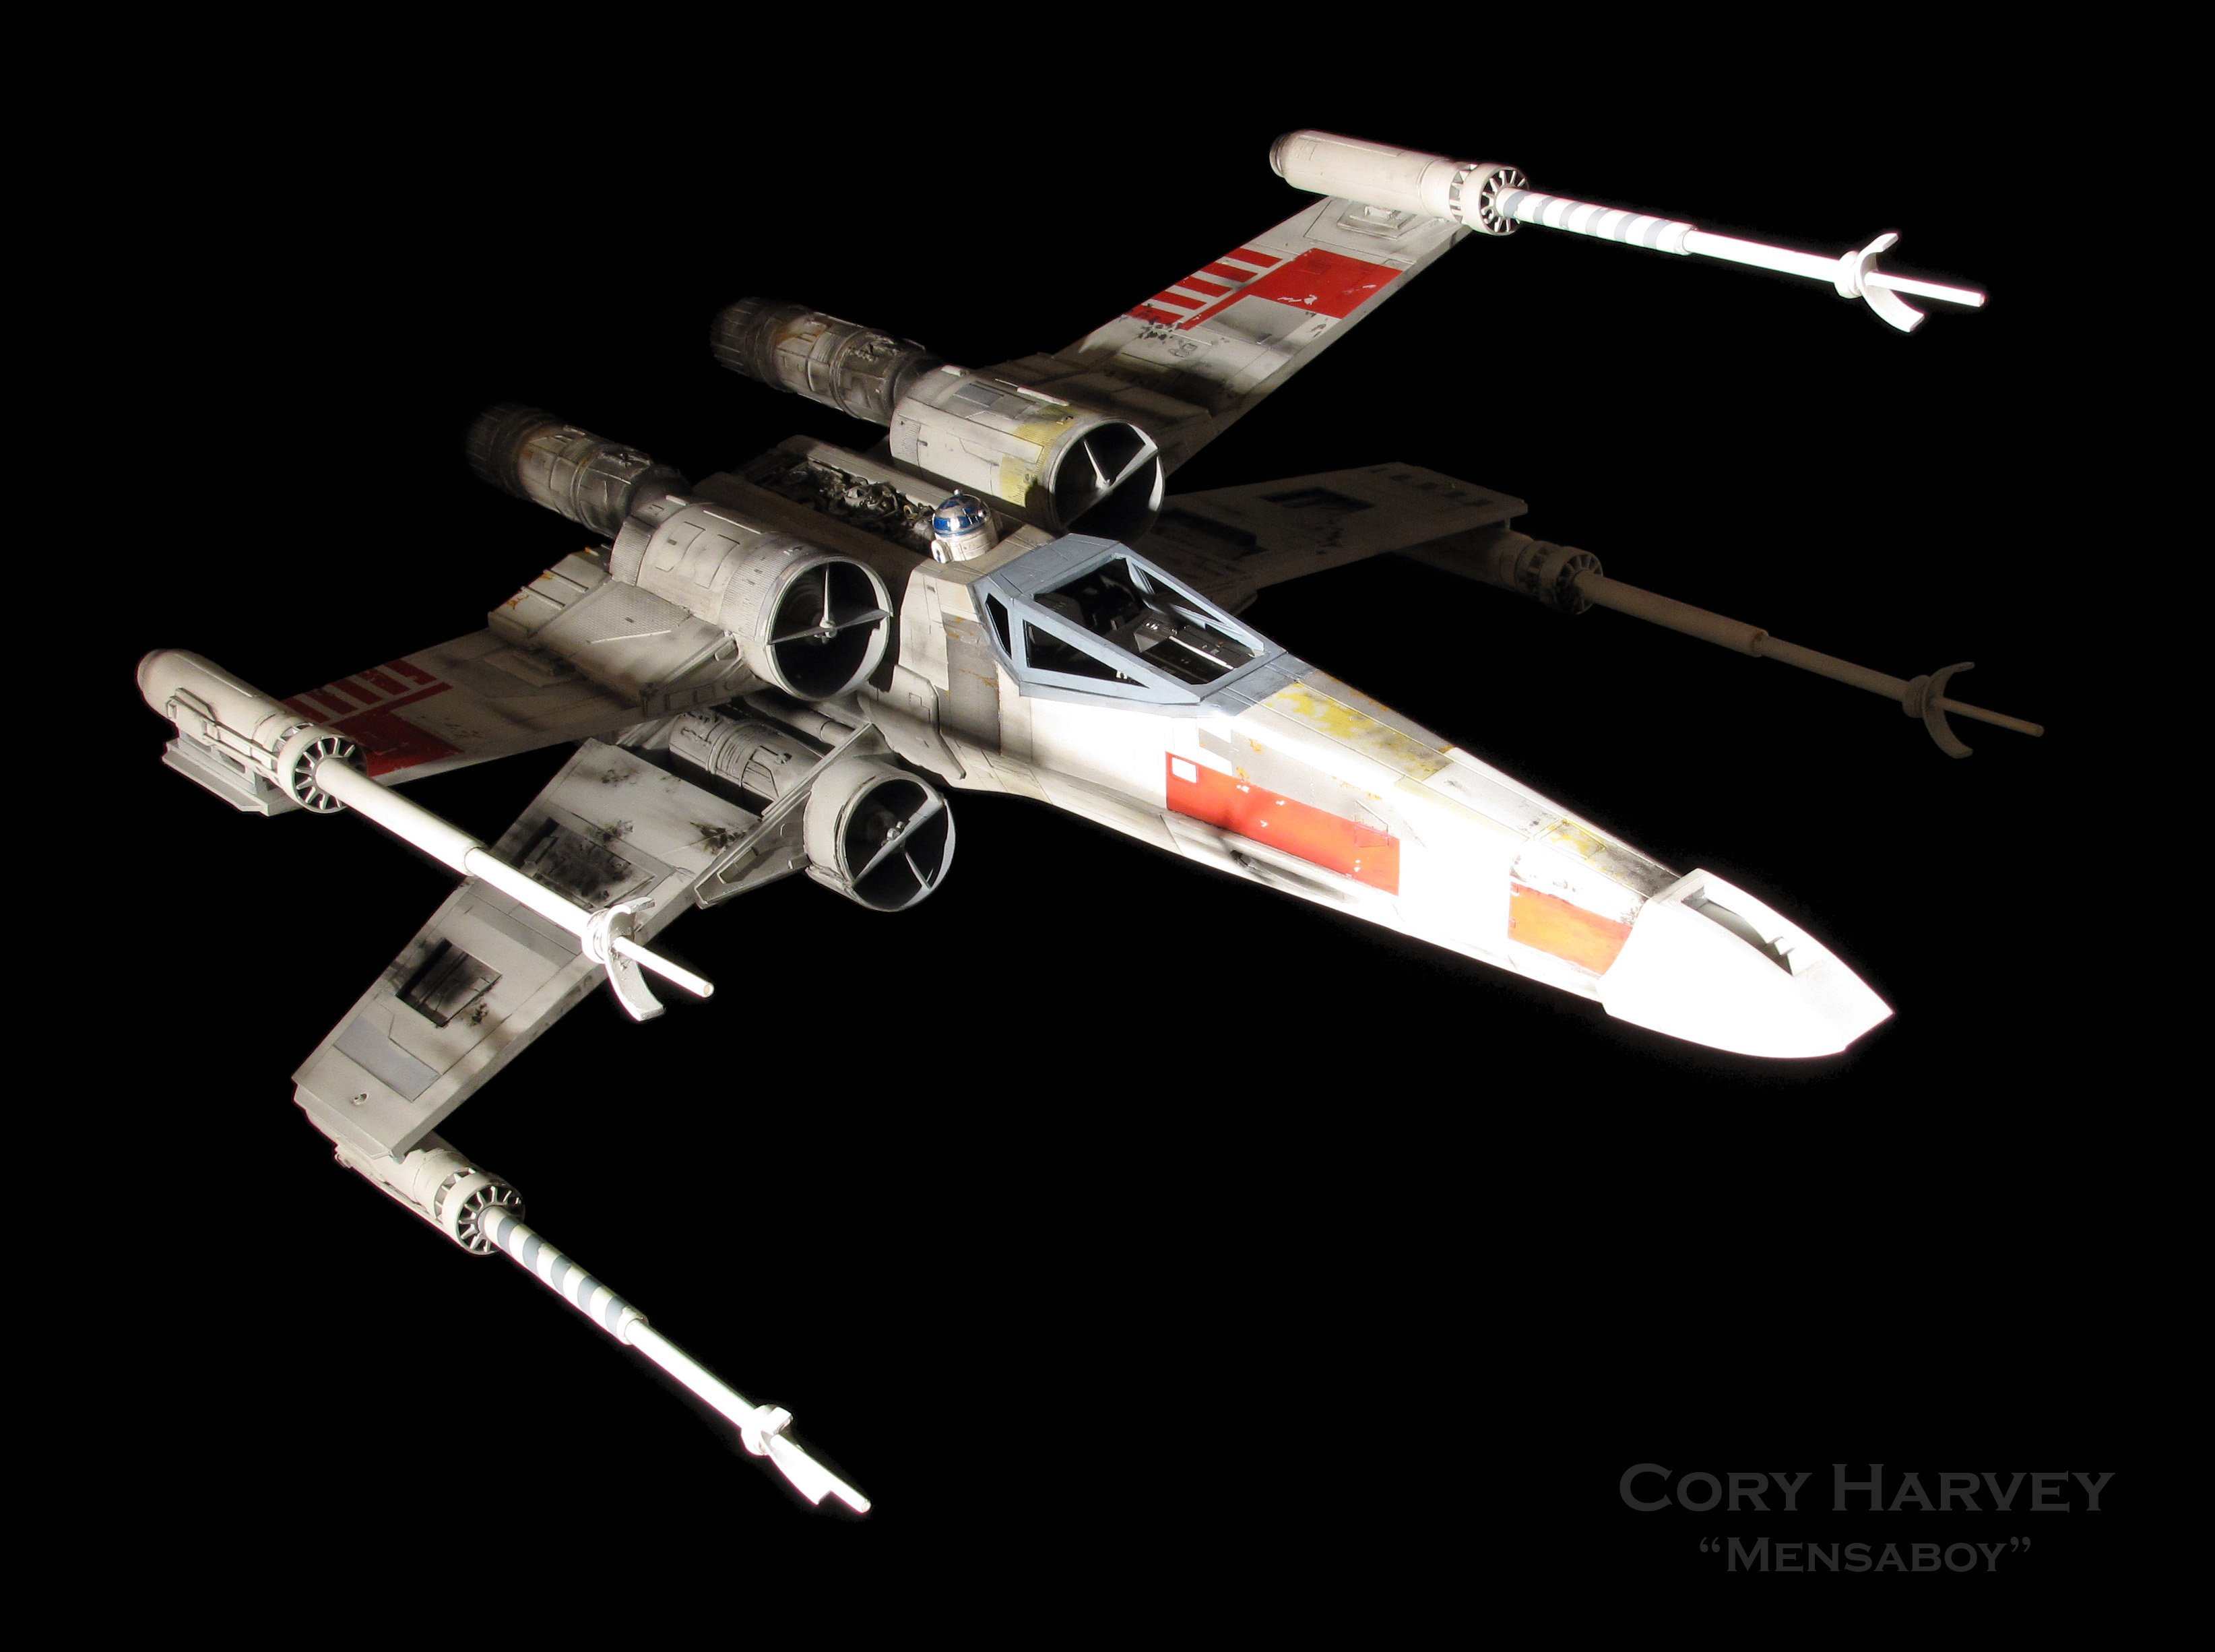 Star Wars X Wing Spaceship Futuristic Space Sci Fi Xwing Wallpaper 3288x2452 811225 Wallpaperup